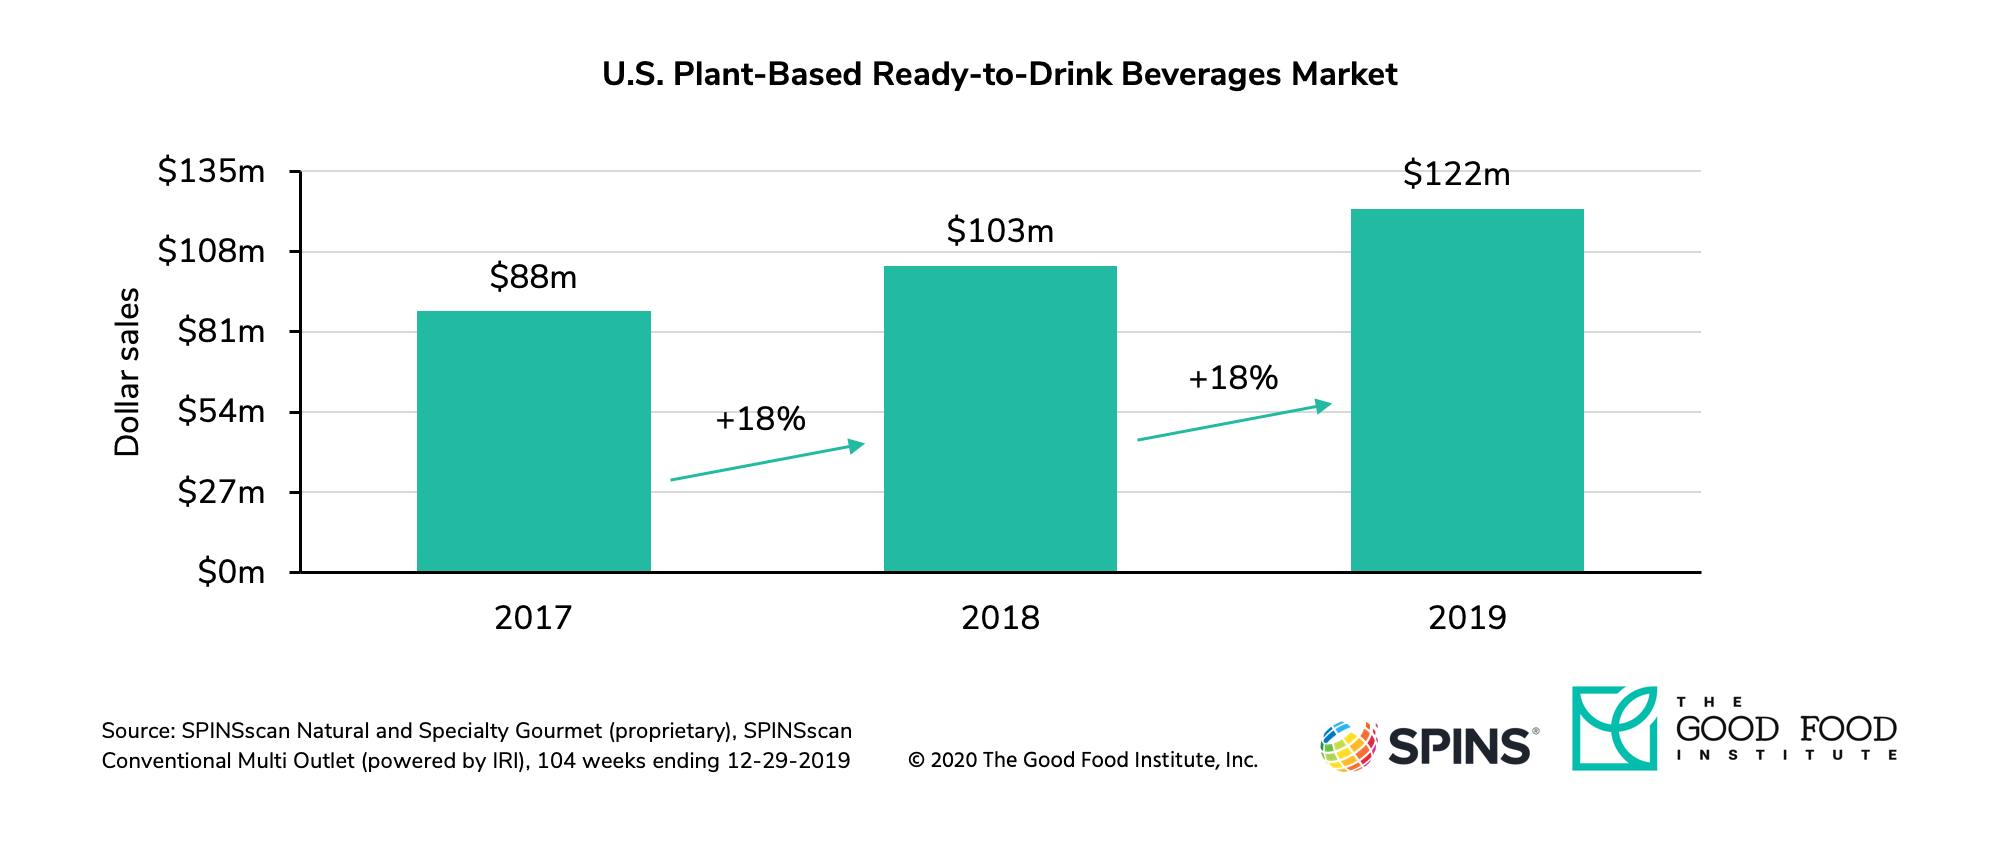 U.S. retail sales of plant-based ready-to-drink beverages reached $122 million in 2019.